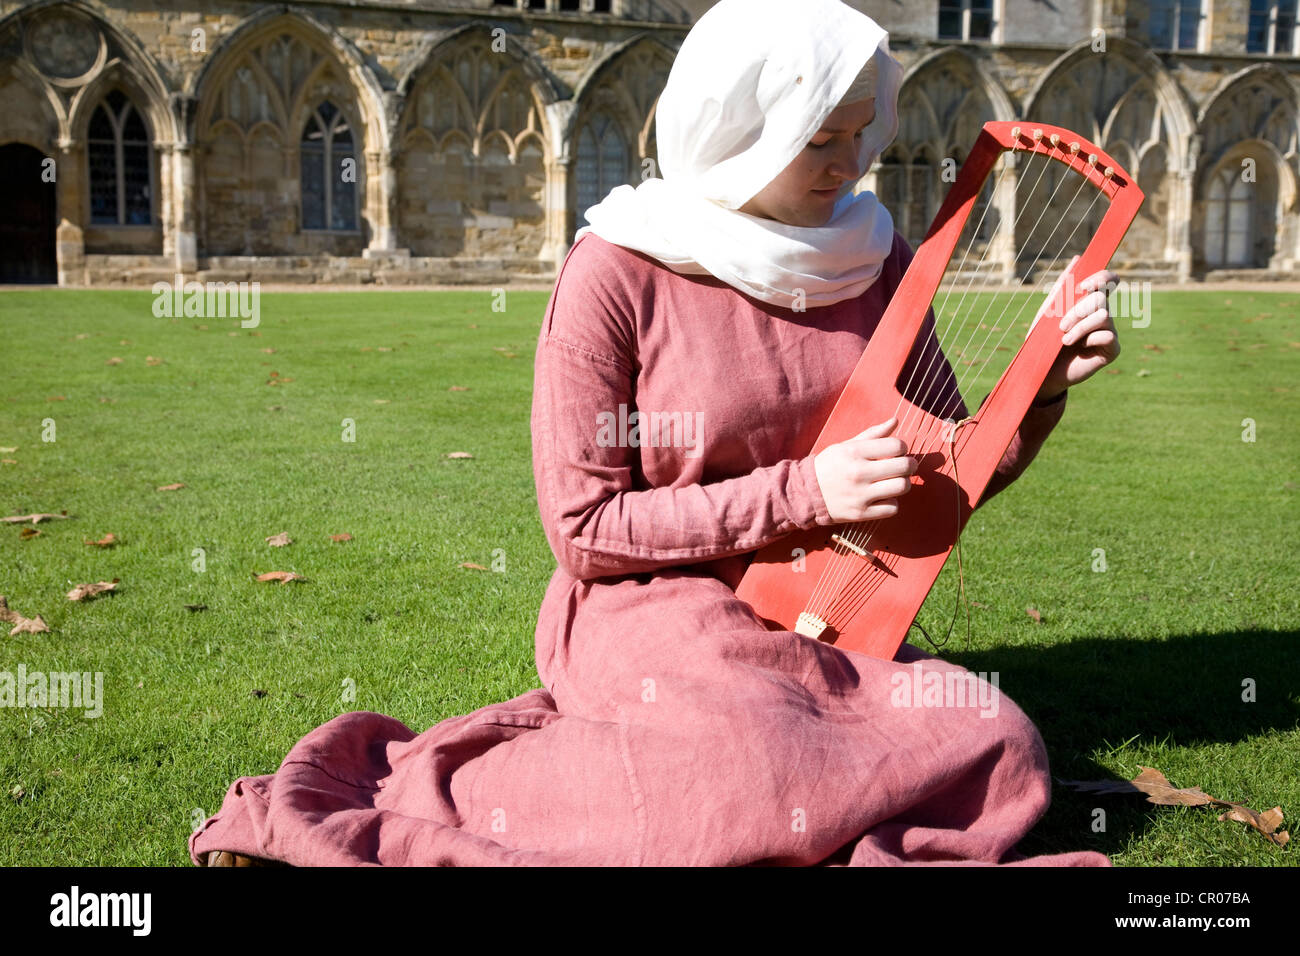 UK. England. Battle Abbey. East Sussex. Woman in medieval costume seated outside on grass lawn. playing traditional - Stock Image